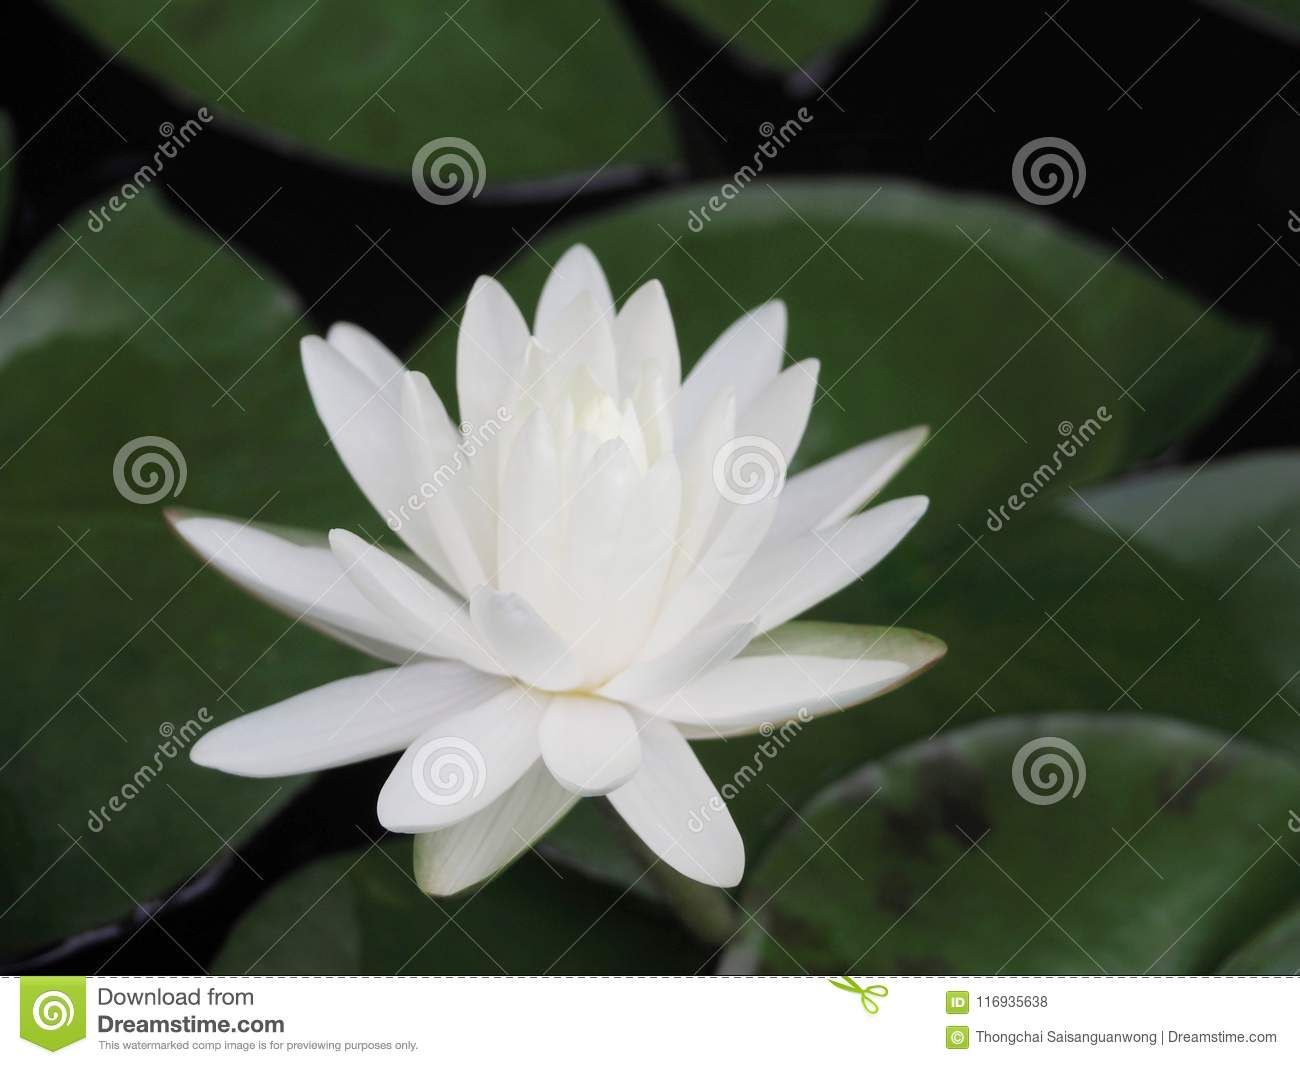 Lotus Flower Or Water Lily White With Green Leaves Beautifully